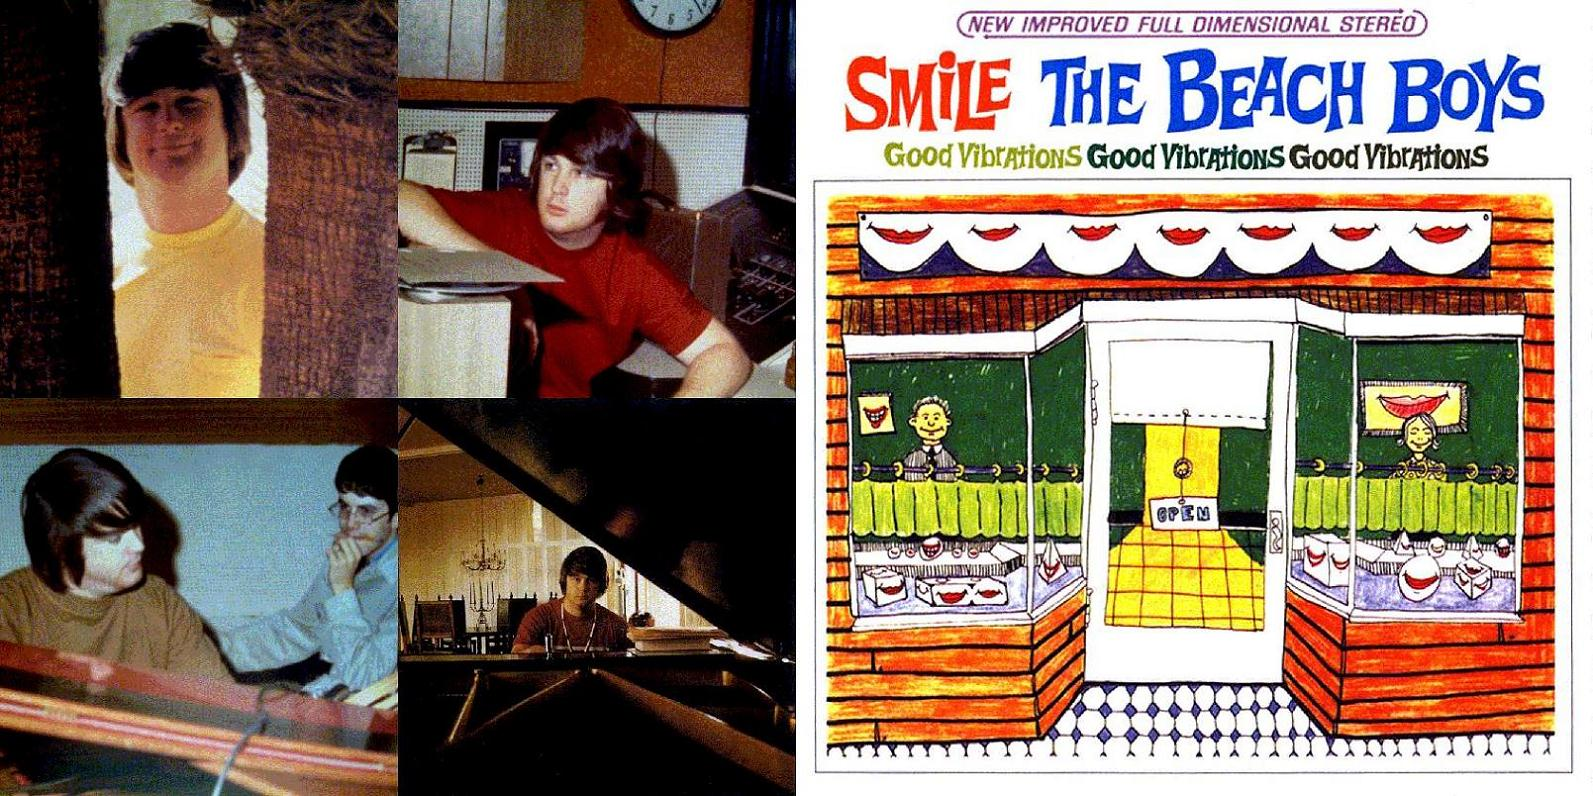 1966-SMILE_A_RECONSTRUCTION-front2fold